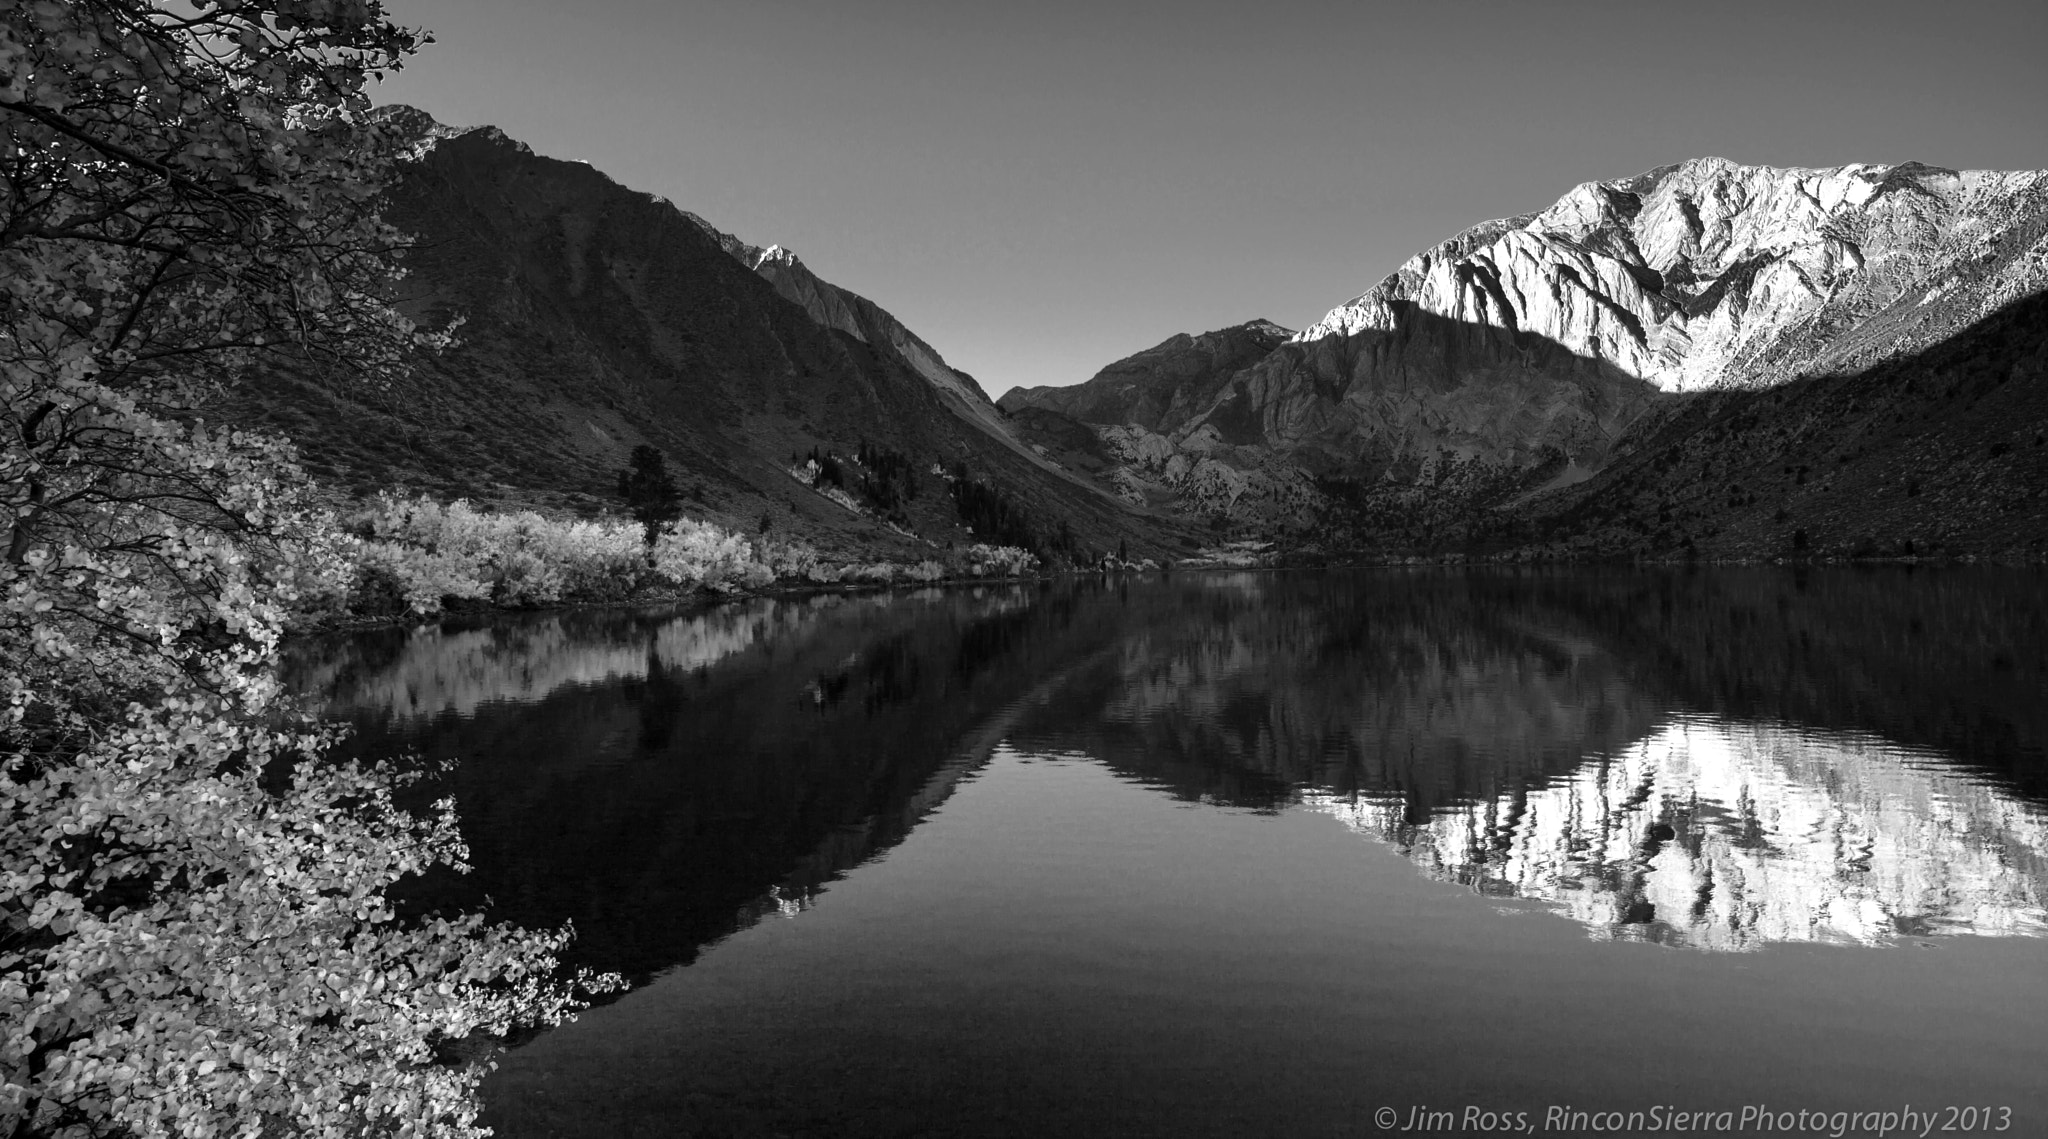 Photograph Convict Lake Sunrise in black and white!!! by Jim Ross on 500px